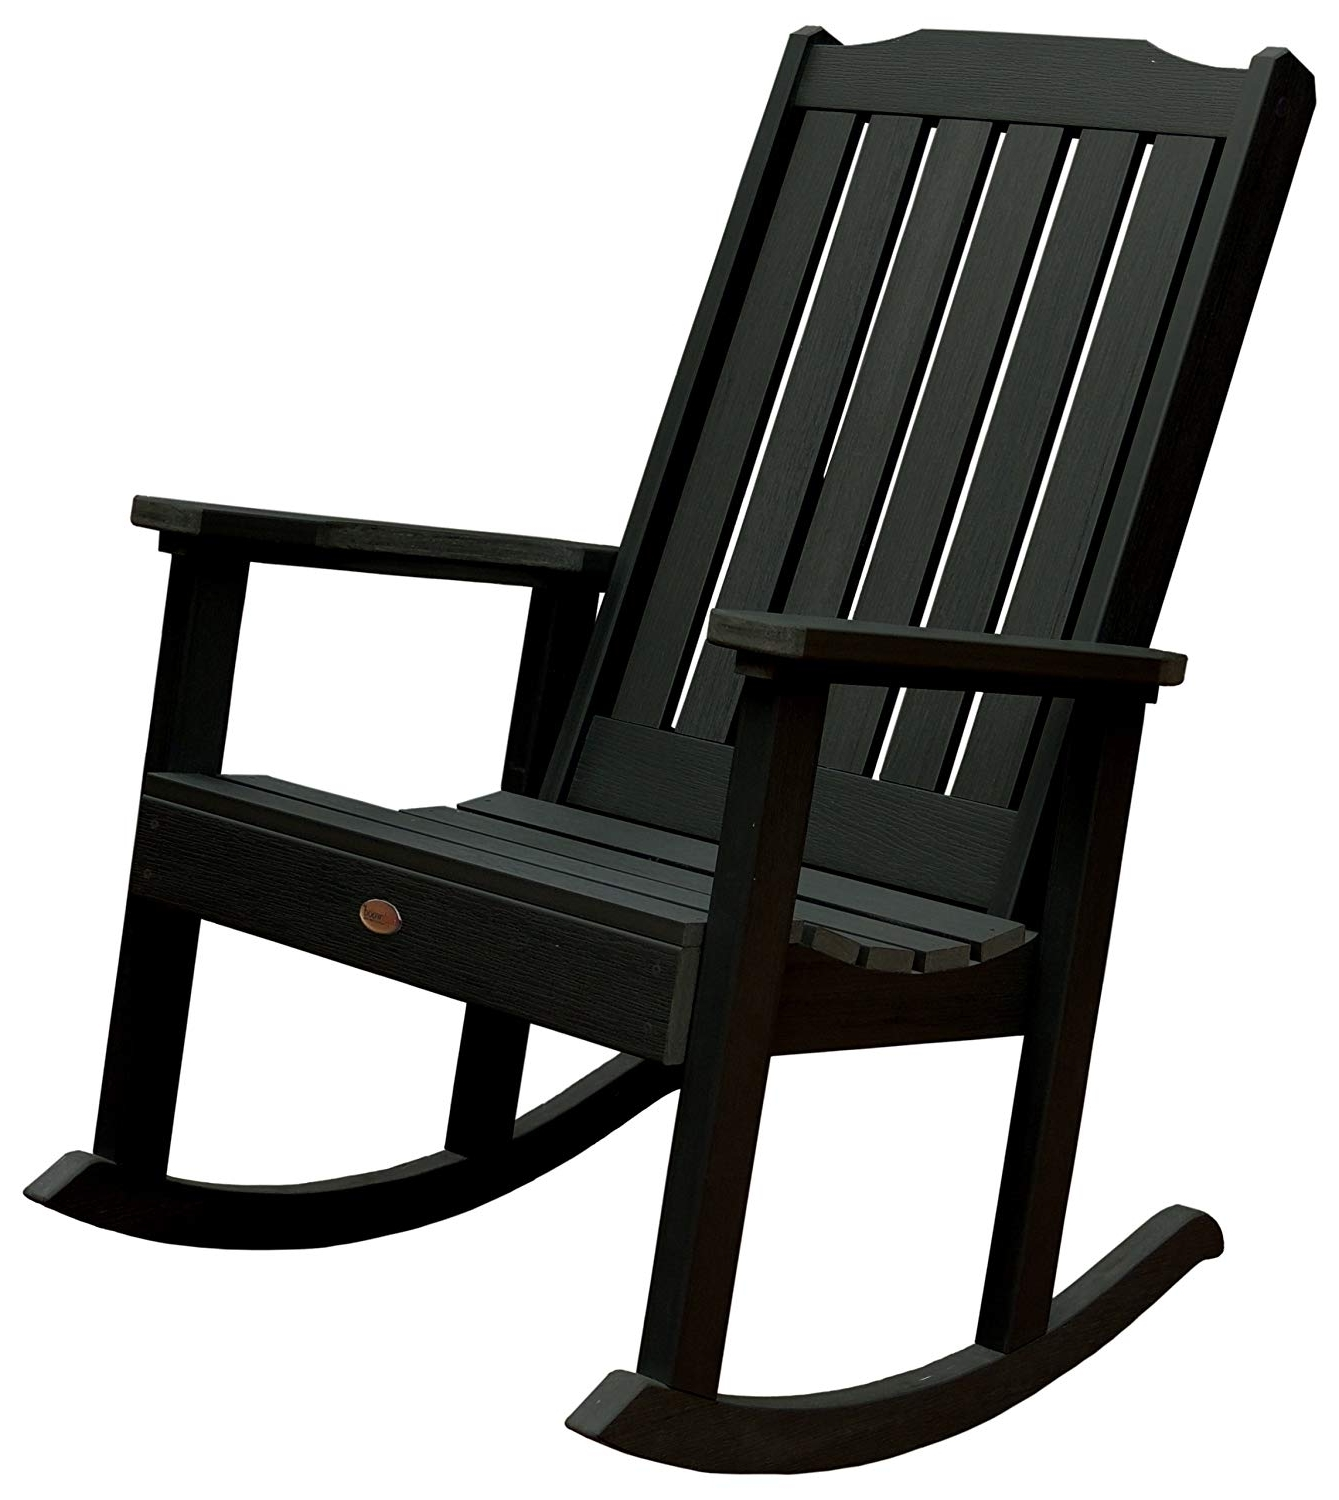 Outdoor Rocking Chairs Regarding Preferred Amazon : Highwood Lehigh Rocking Chair, Charleston Green : Patio (View 6 of 15)